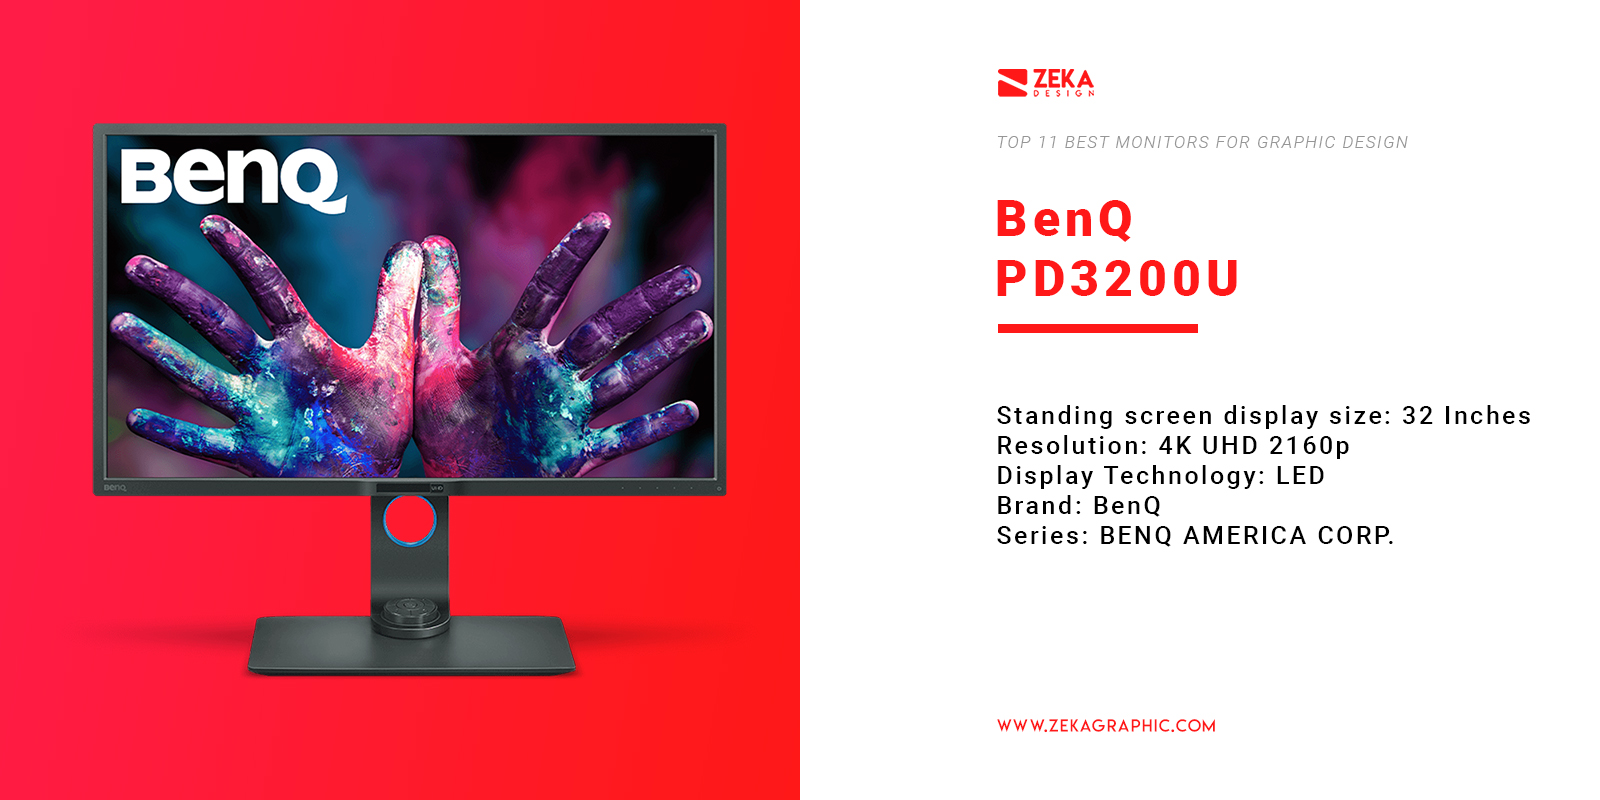 BenQ PD3200U 4K Monitor for Graphic Design